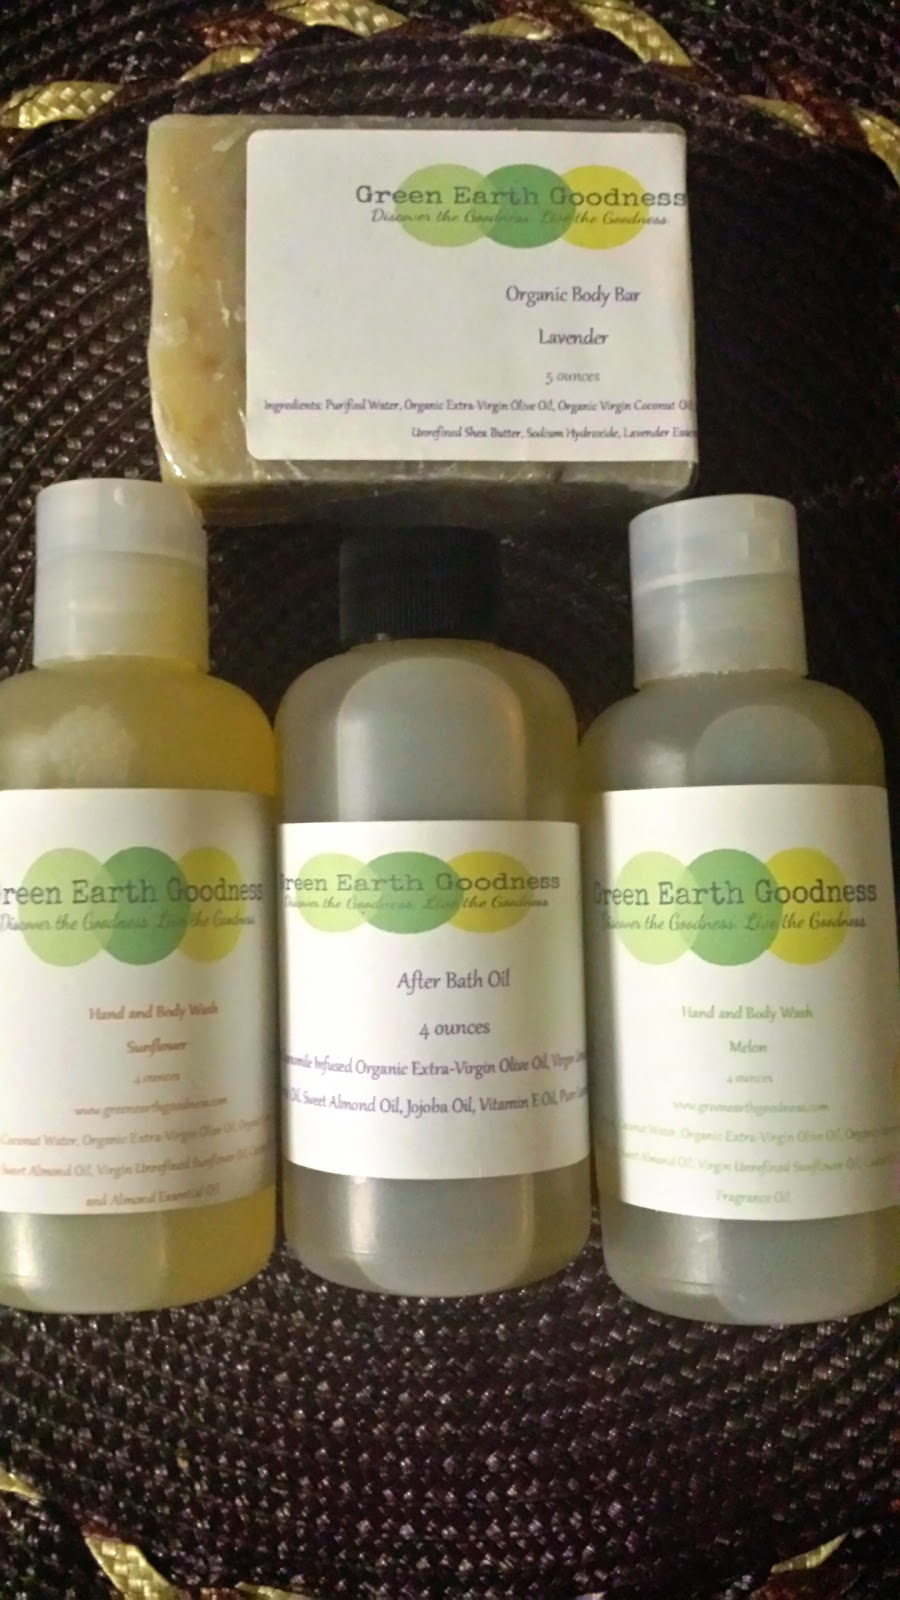 Natural Organic Skin Care Products- Green Earth Goodness Review and Giveaway Ends 4/9